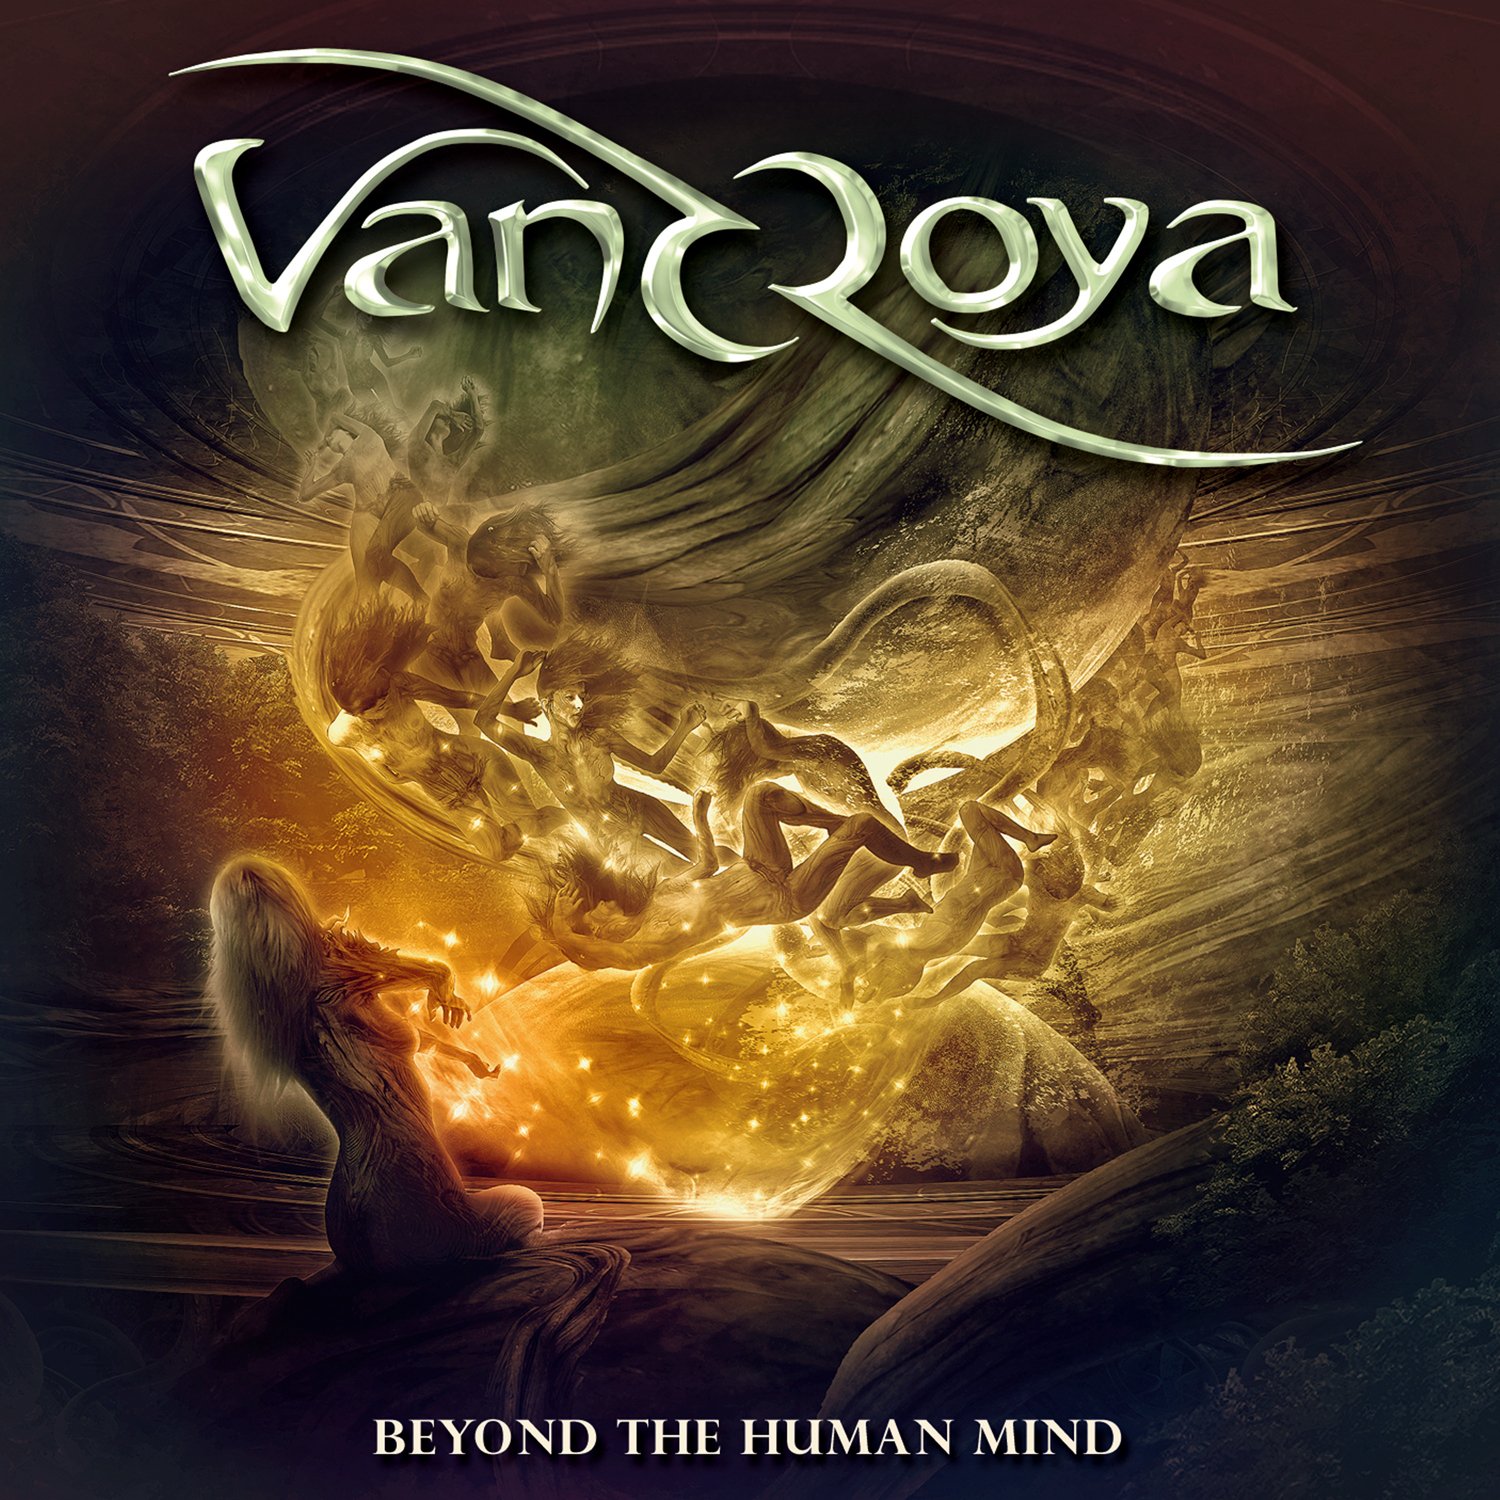 Vandroya Beyond the Human Mind